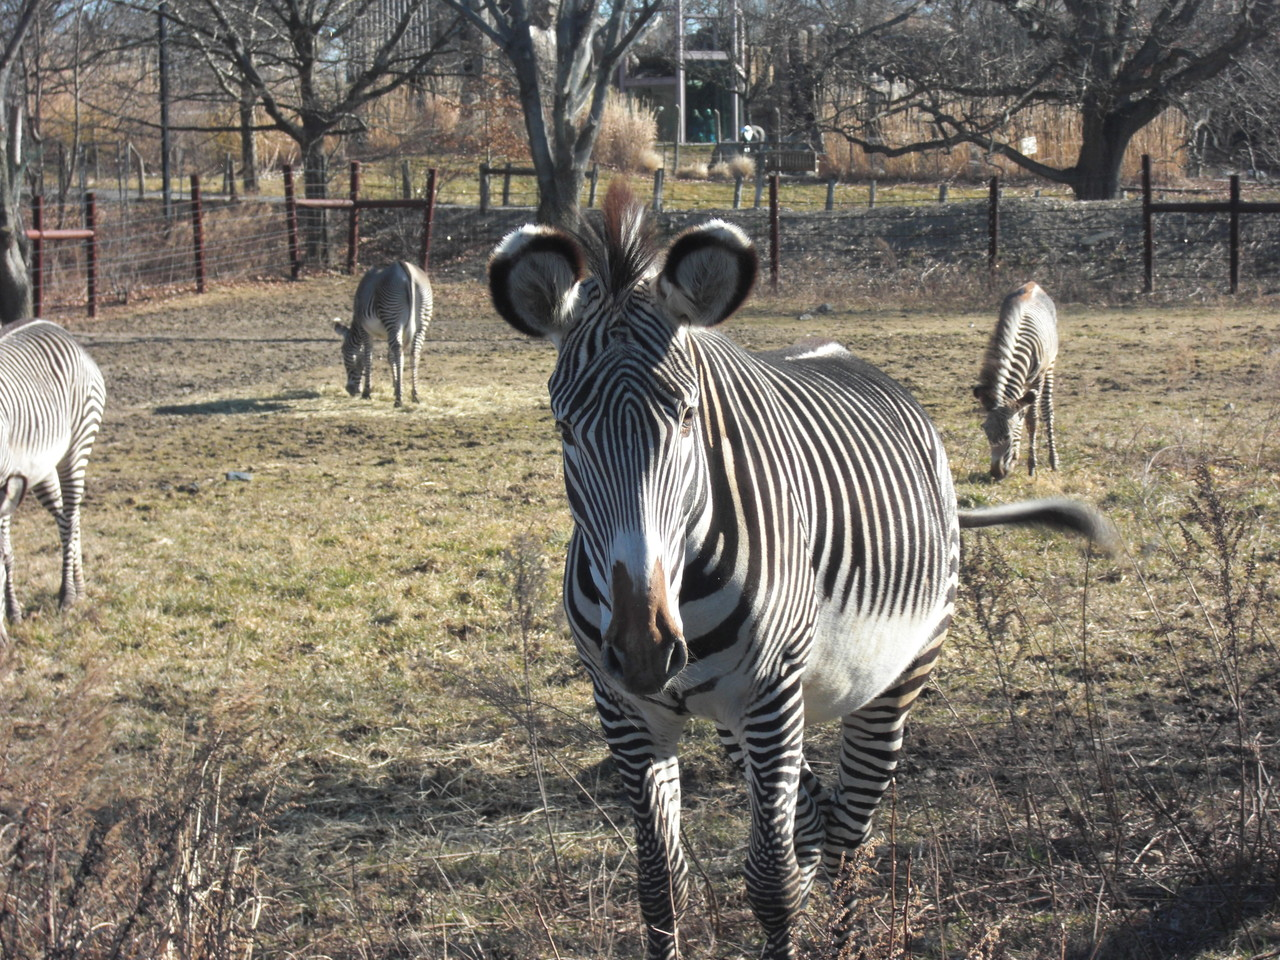 Zebras - Franklin Park Zoo - Umgebung Boston